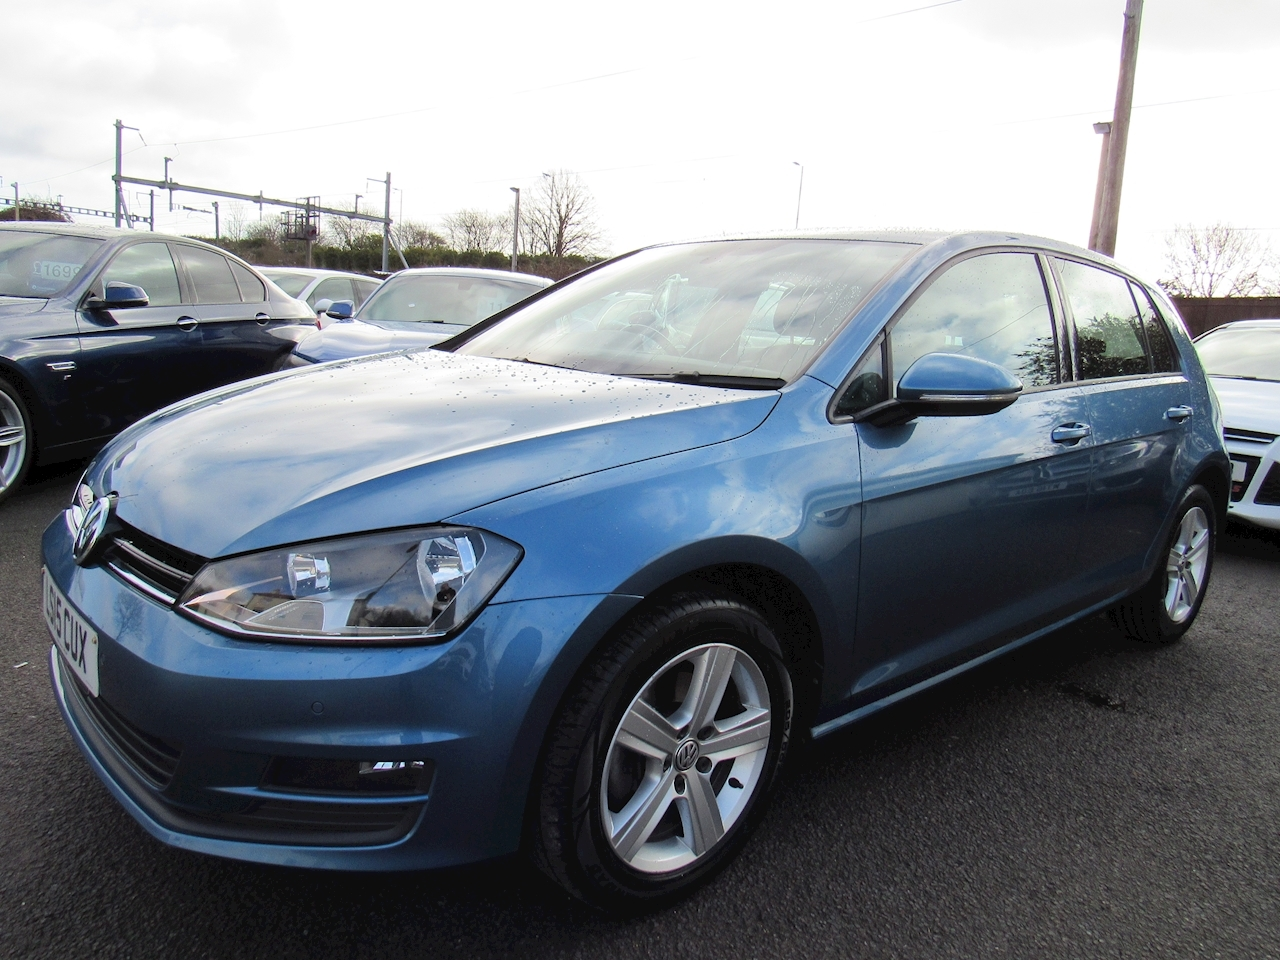 Volkswagen Golf Match Tsi Bluemotion Technology Hatchback 1.4 Manual Petrol